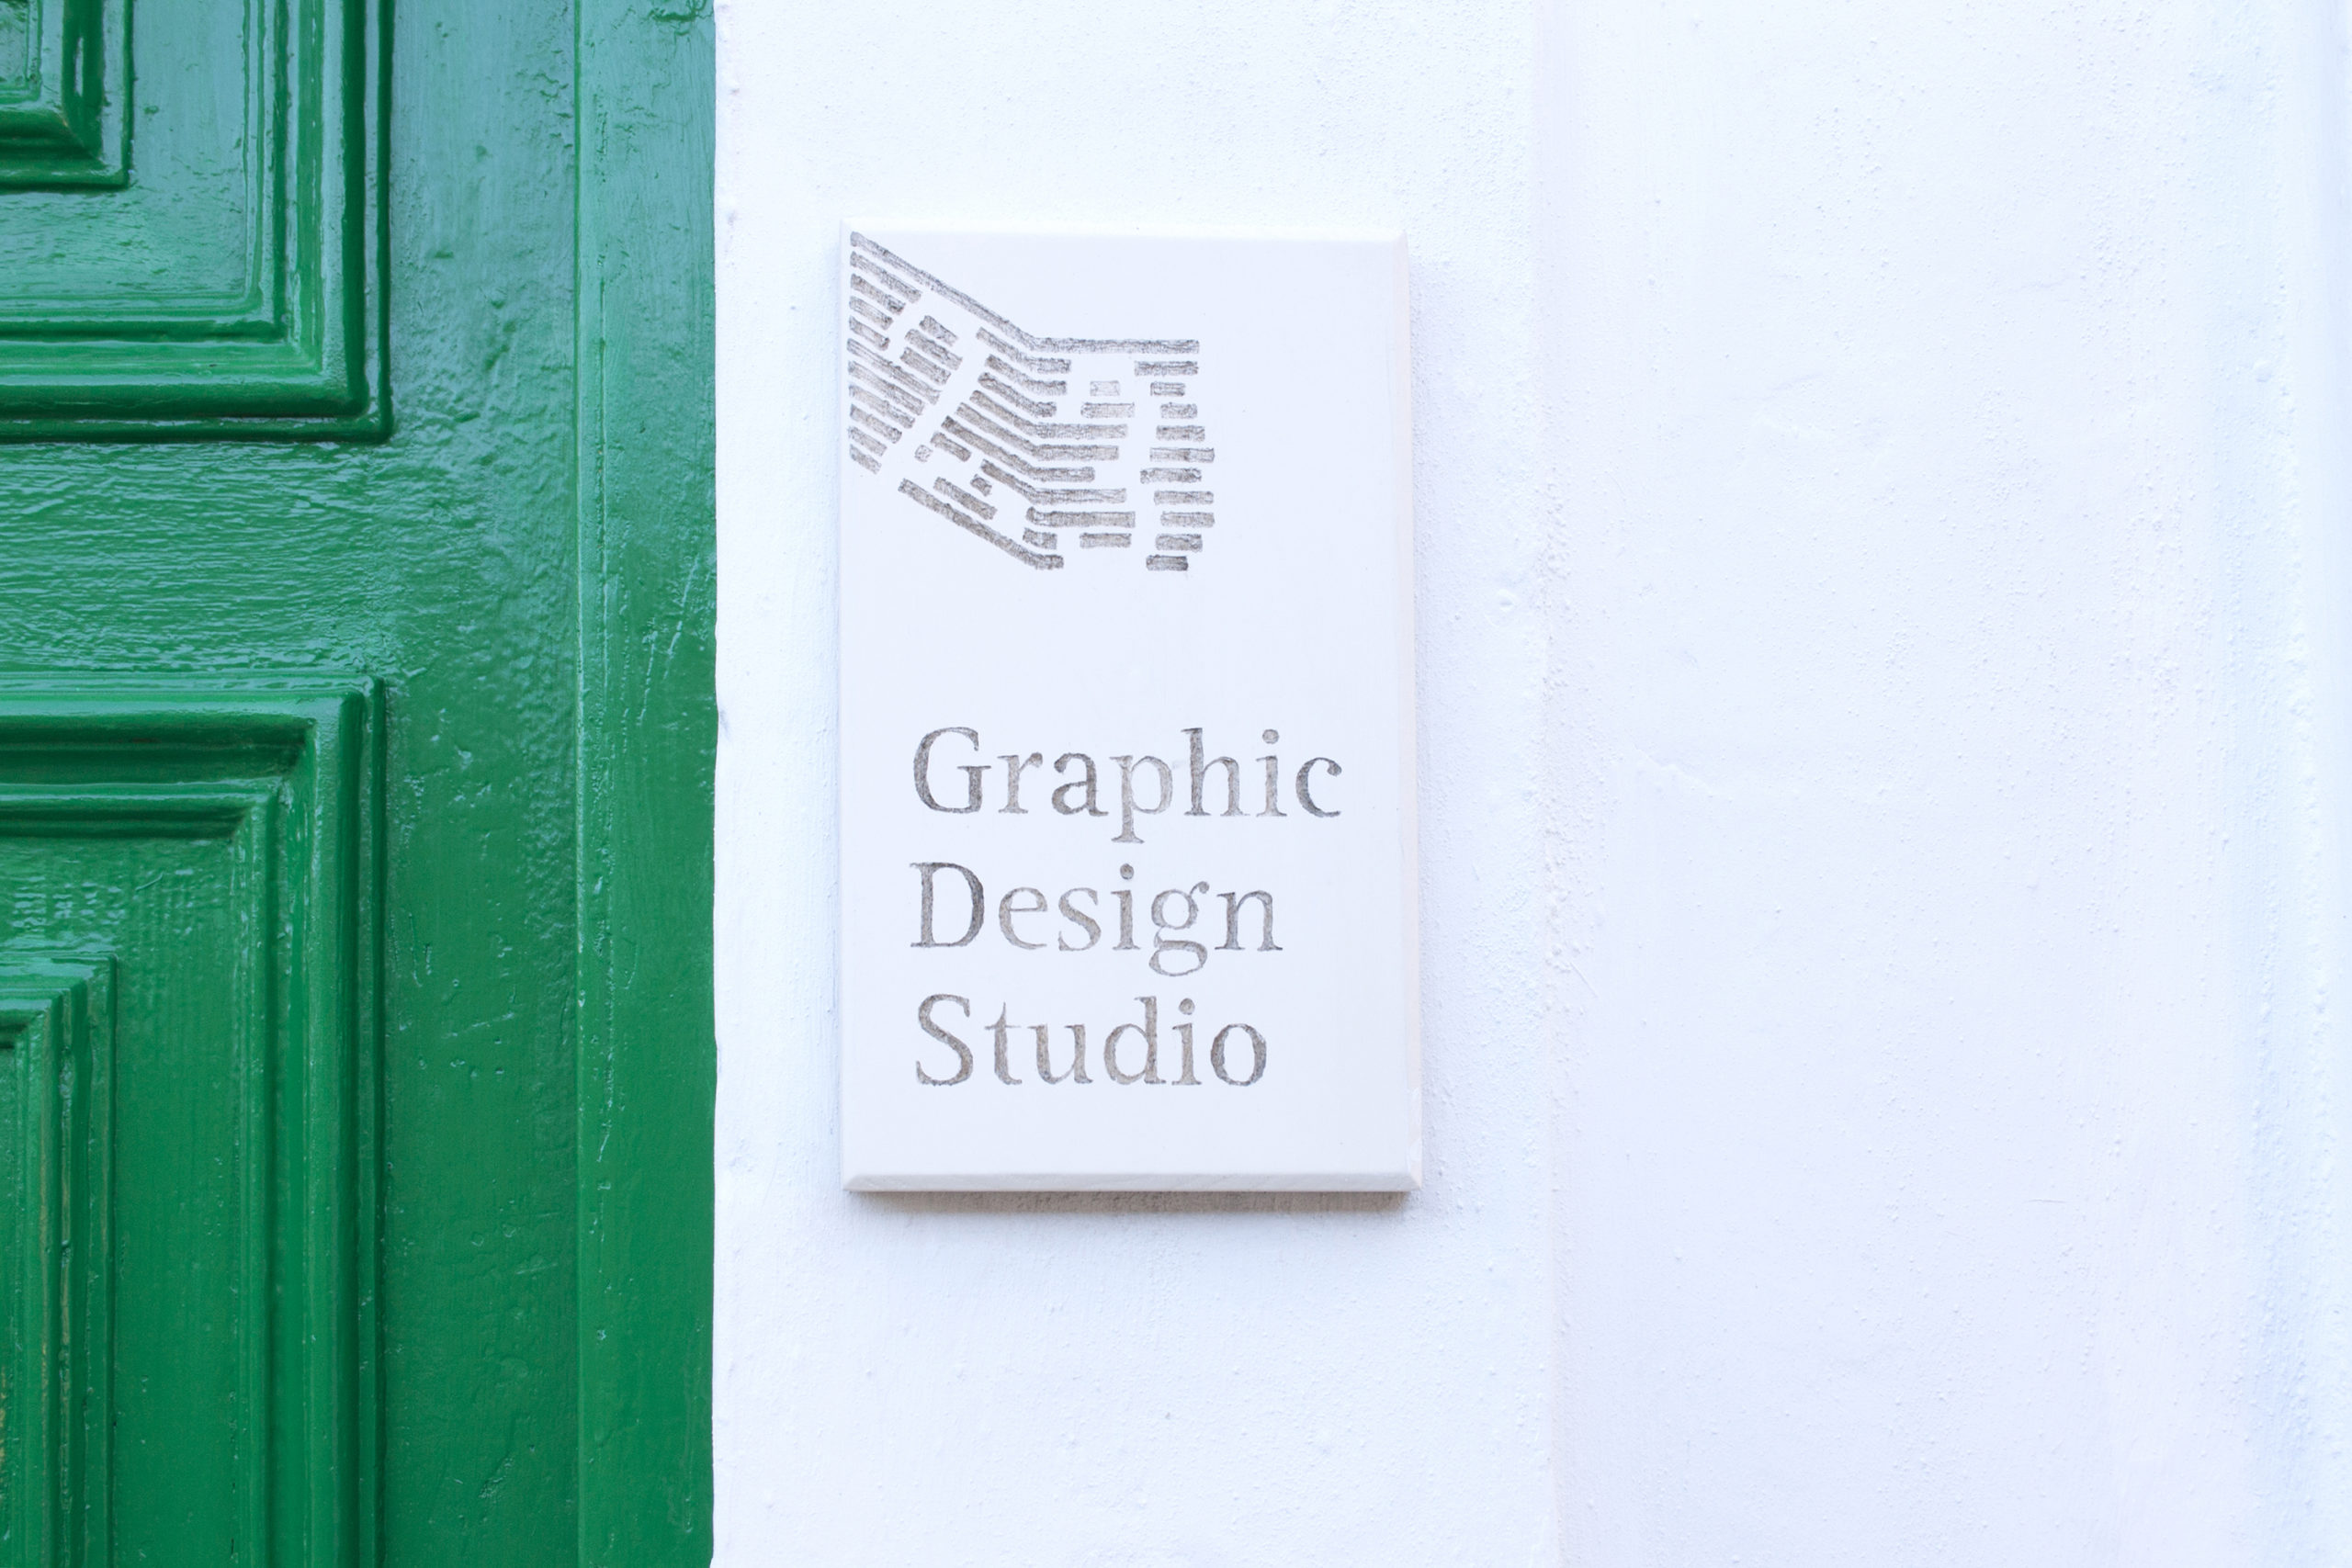 Graphic Design Studio - 2point3 - Malta, Europe